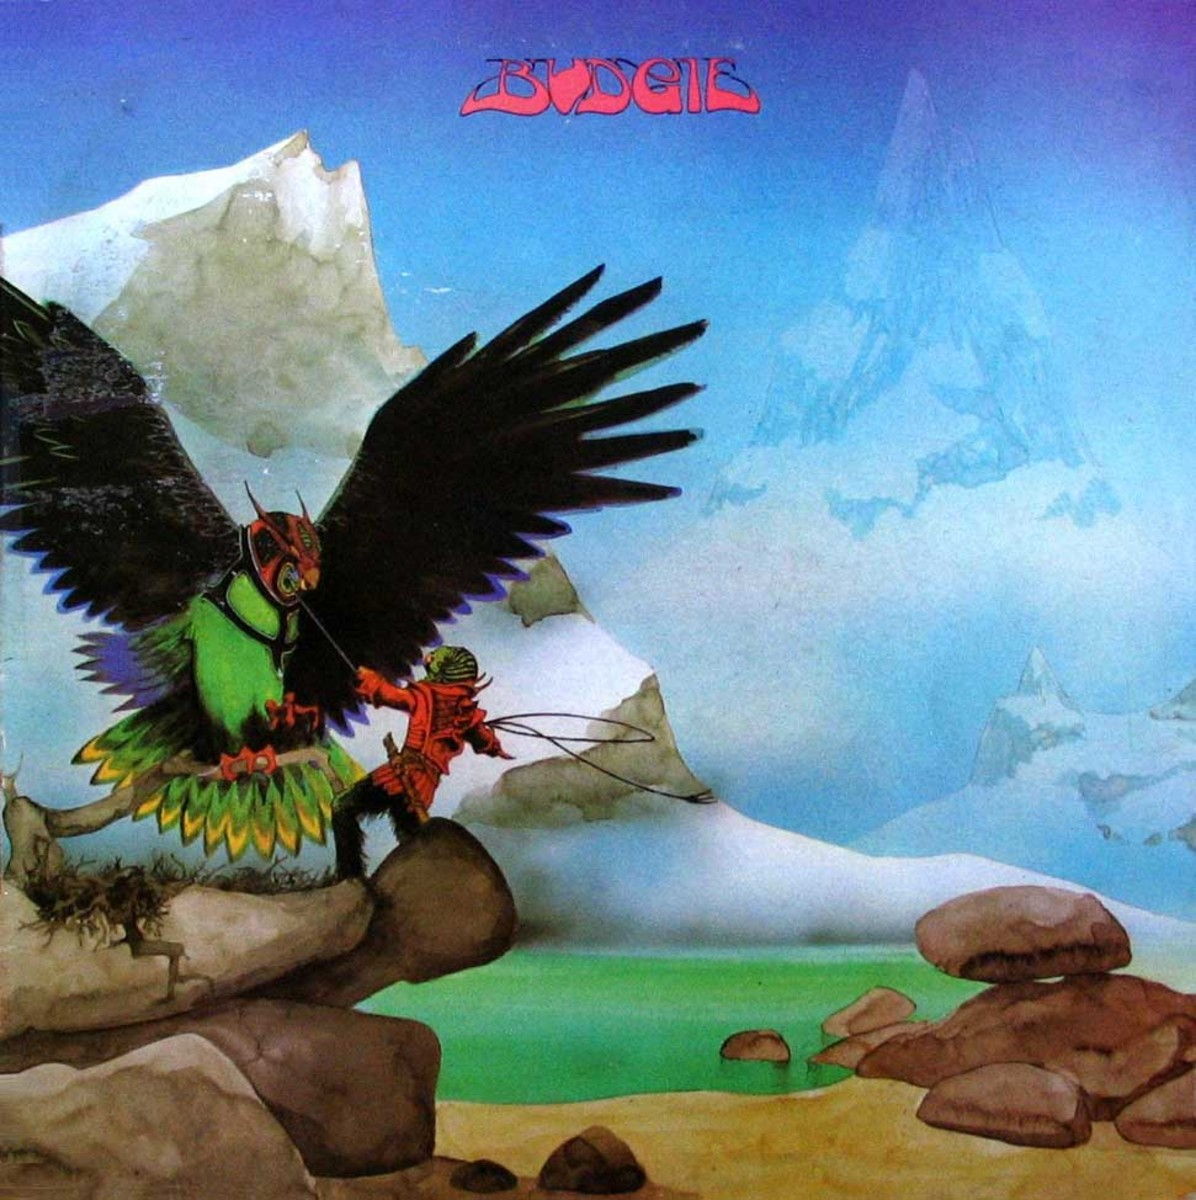 "Budgie ""Never Turn Your Back on a Friend"" MCA Records MDKS 8010 12"" LP Vinyl Record, UK Pressing (1973) Gatefold Album Cover Art & Design by Roger Dean"